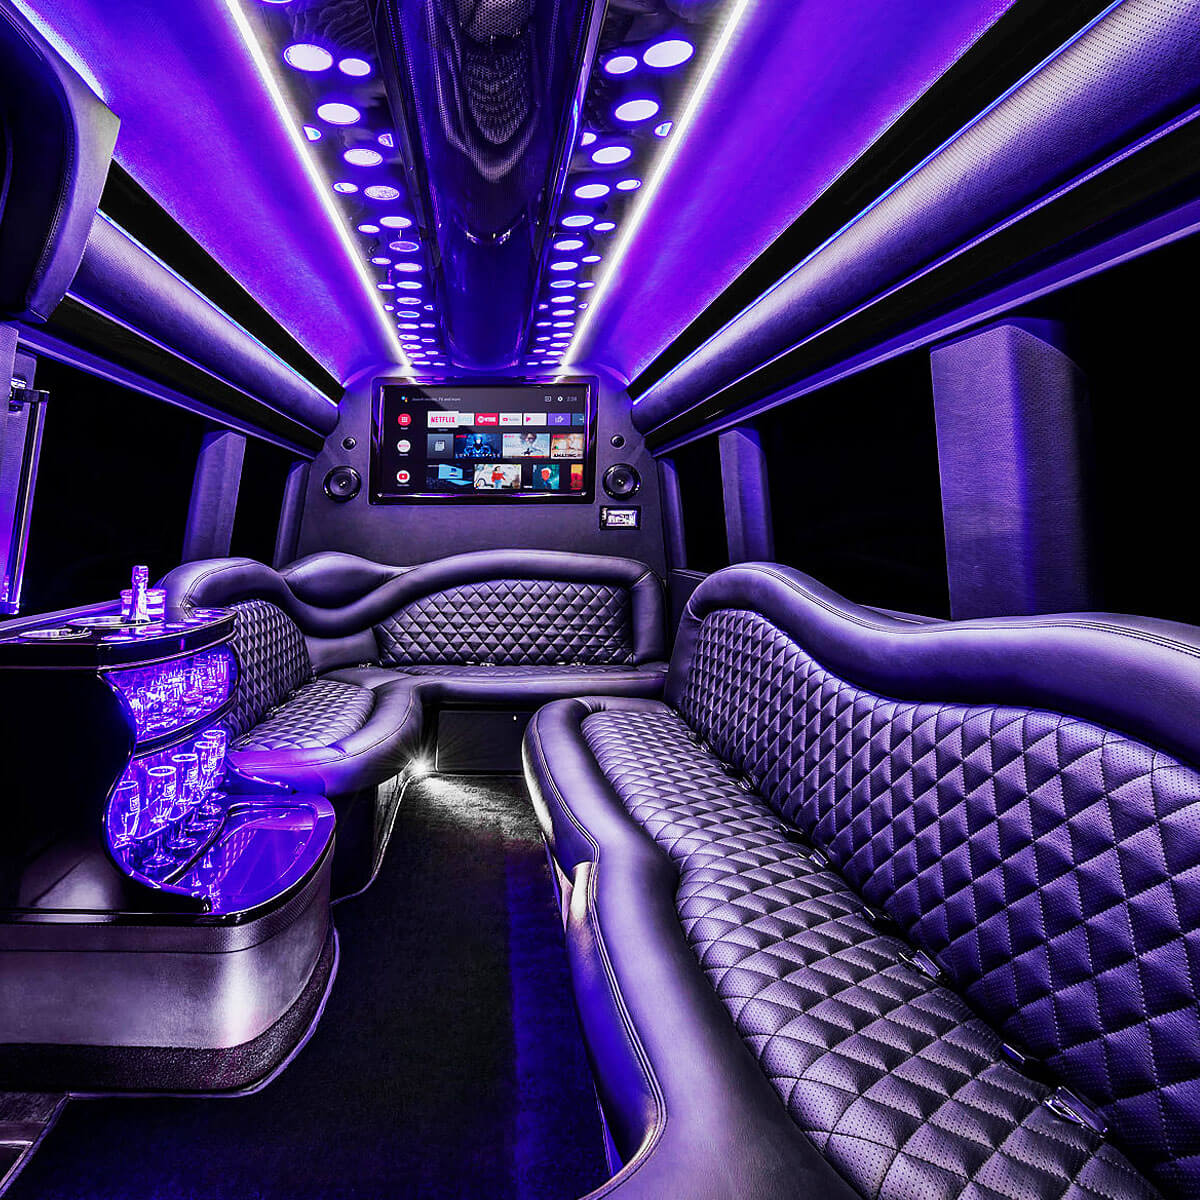 What to expect from a party bus - The party bus amenities